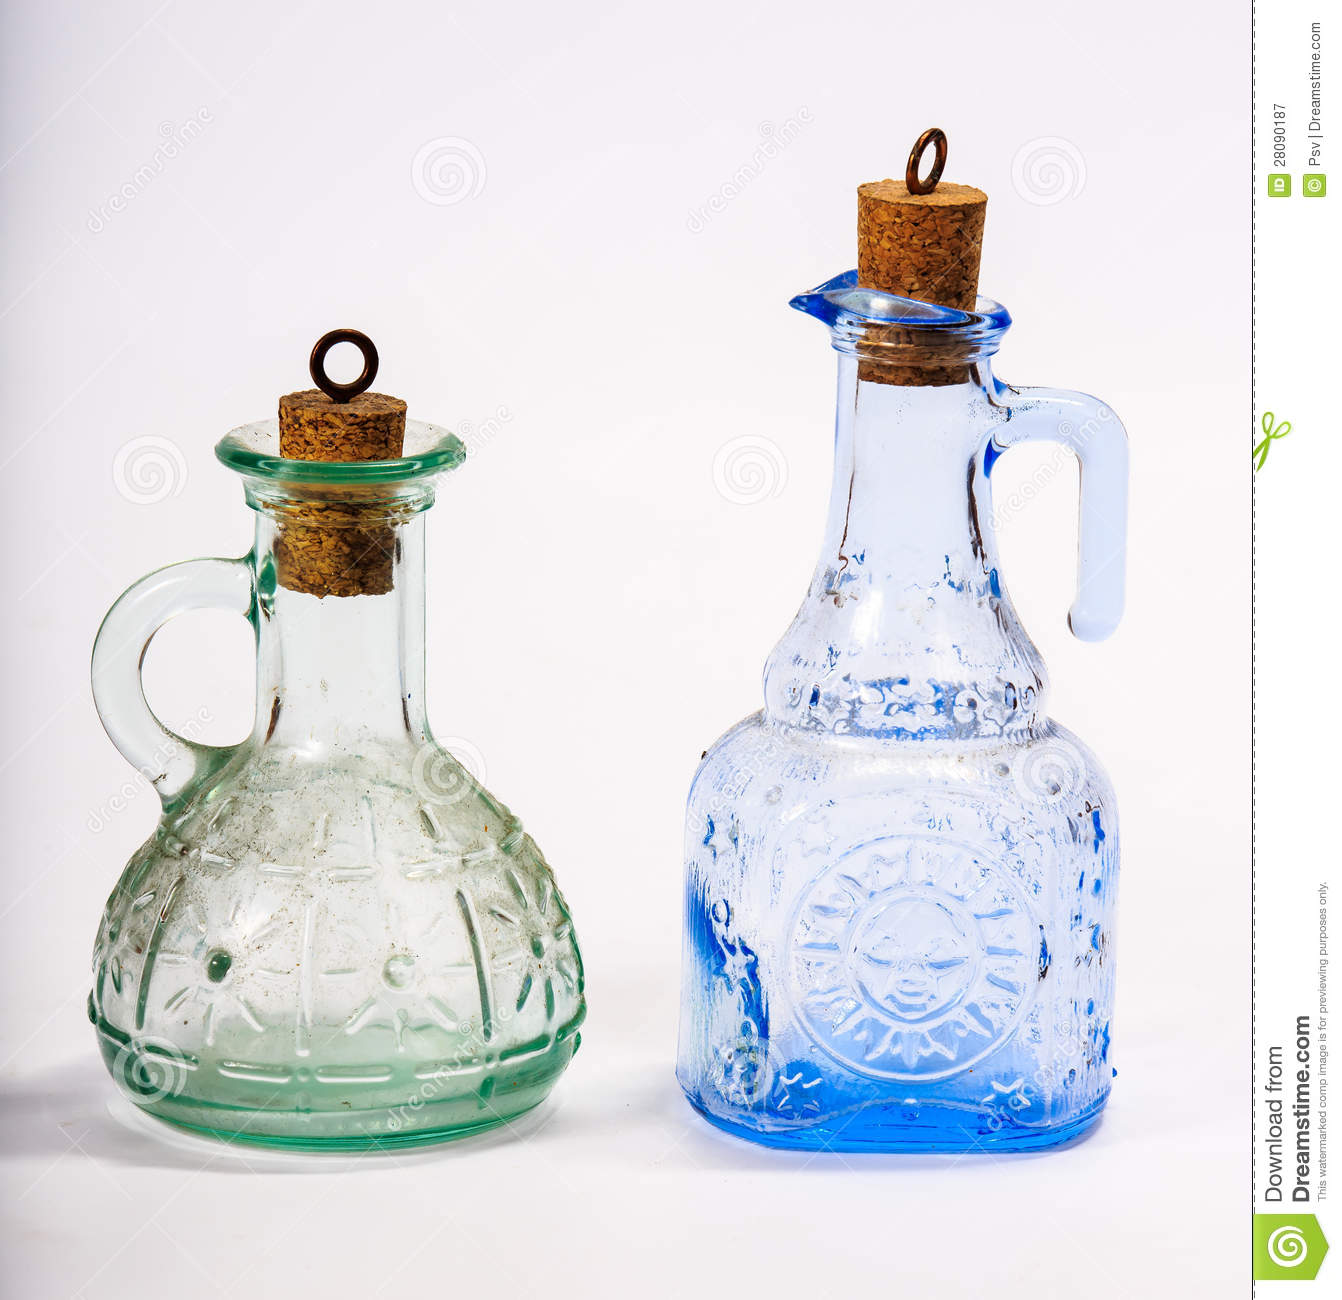 Two Glass Decorative Bottle Royalty Free Stock Photography Image 28090187